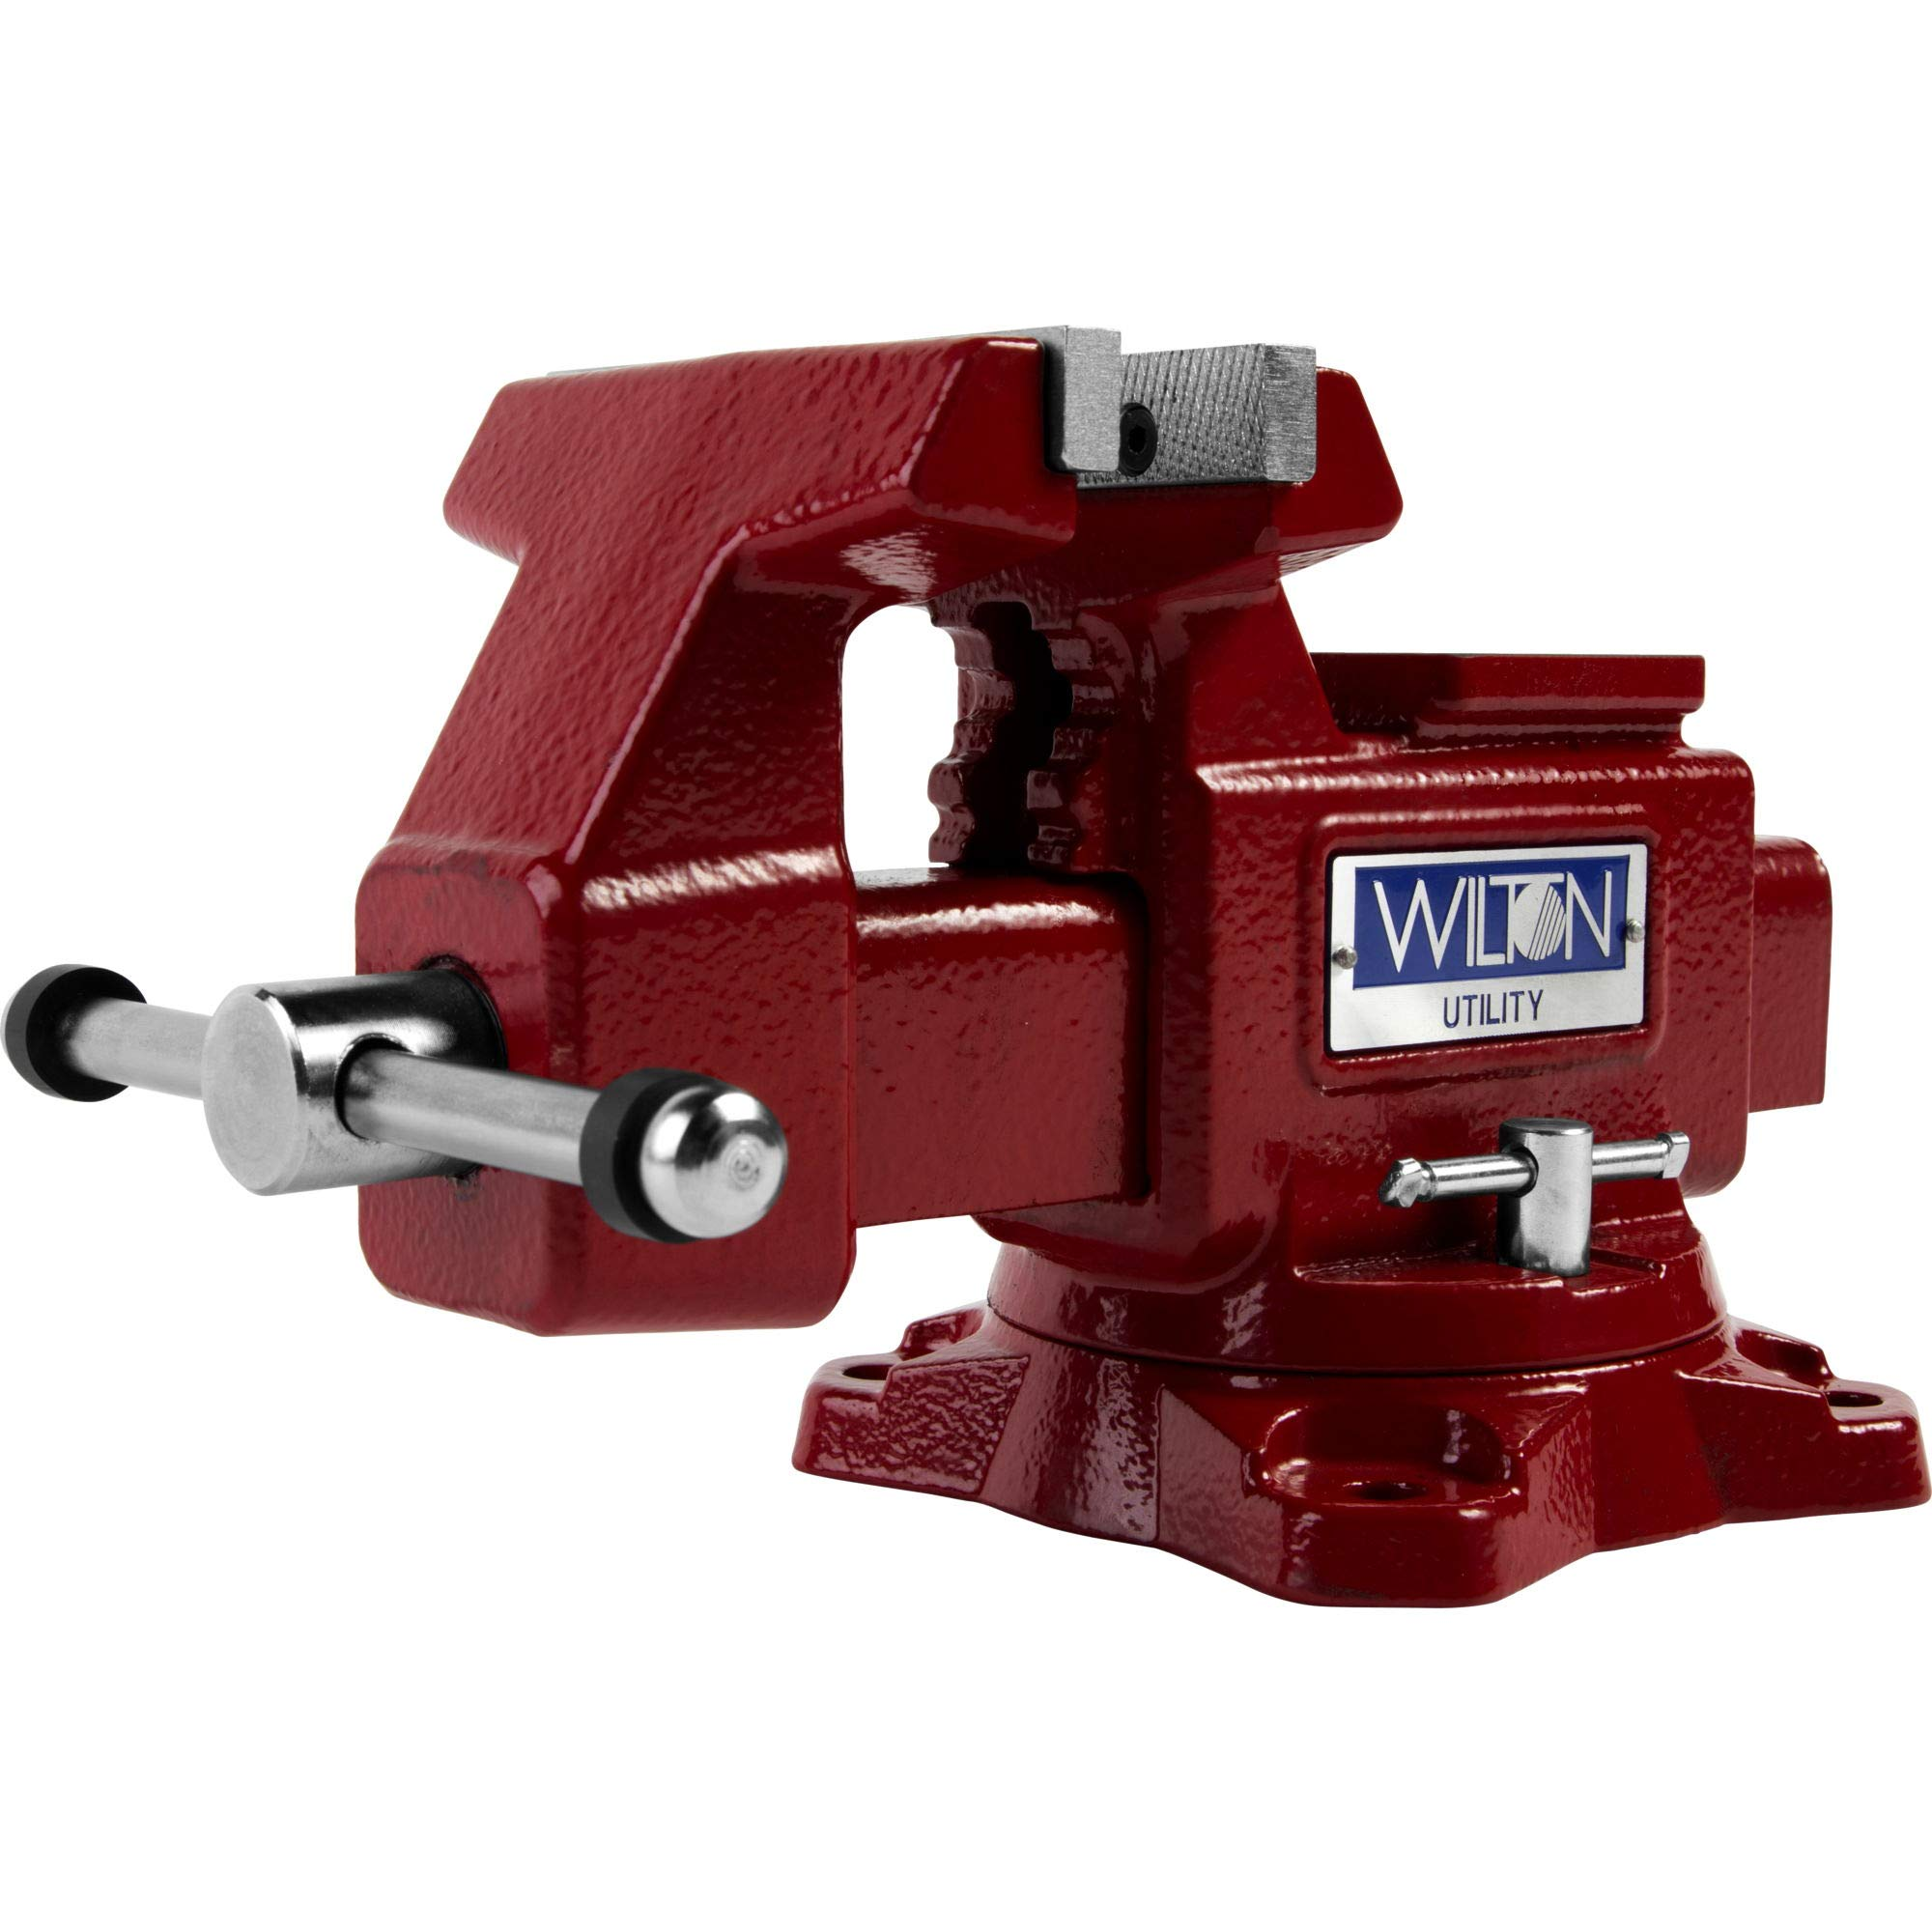 674U, Utility Bench Vise, 4-1/2'' Jaw Width, 4'' Jaw Opening, 2-3/4'' Throat Depth by Unknown